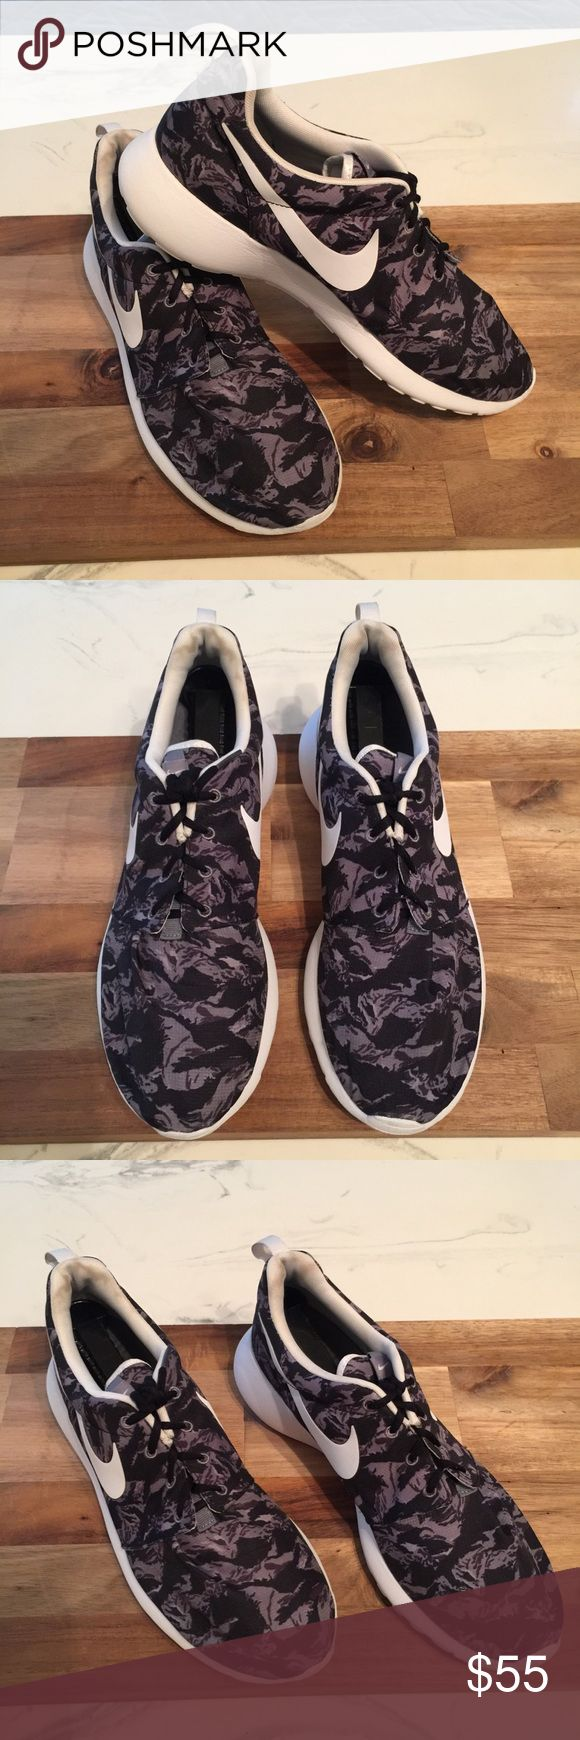 Nike Roshe Run Print Camouflage Black Grey White Nike Roshe Run Print Camouflage Black / Grey / White  Excellent Used Condition! Extremely CLEAN! Nike Shoes